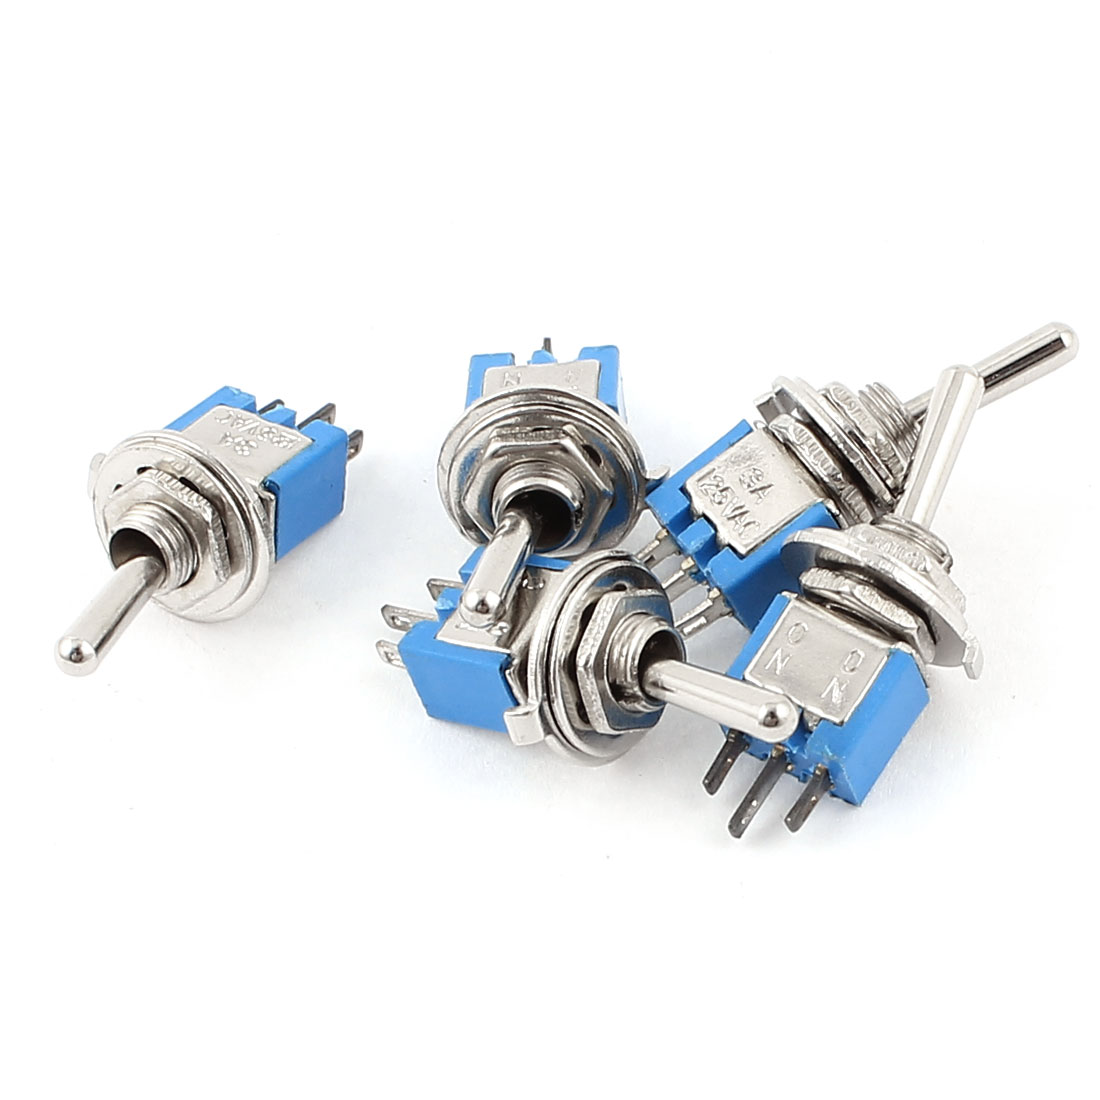 5Pcs AC 125V 3A 2 Position On-On 5mm Thread Panel Mount SPDT Latching Mini Toggle Switch Blue